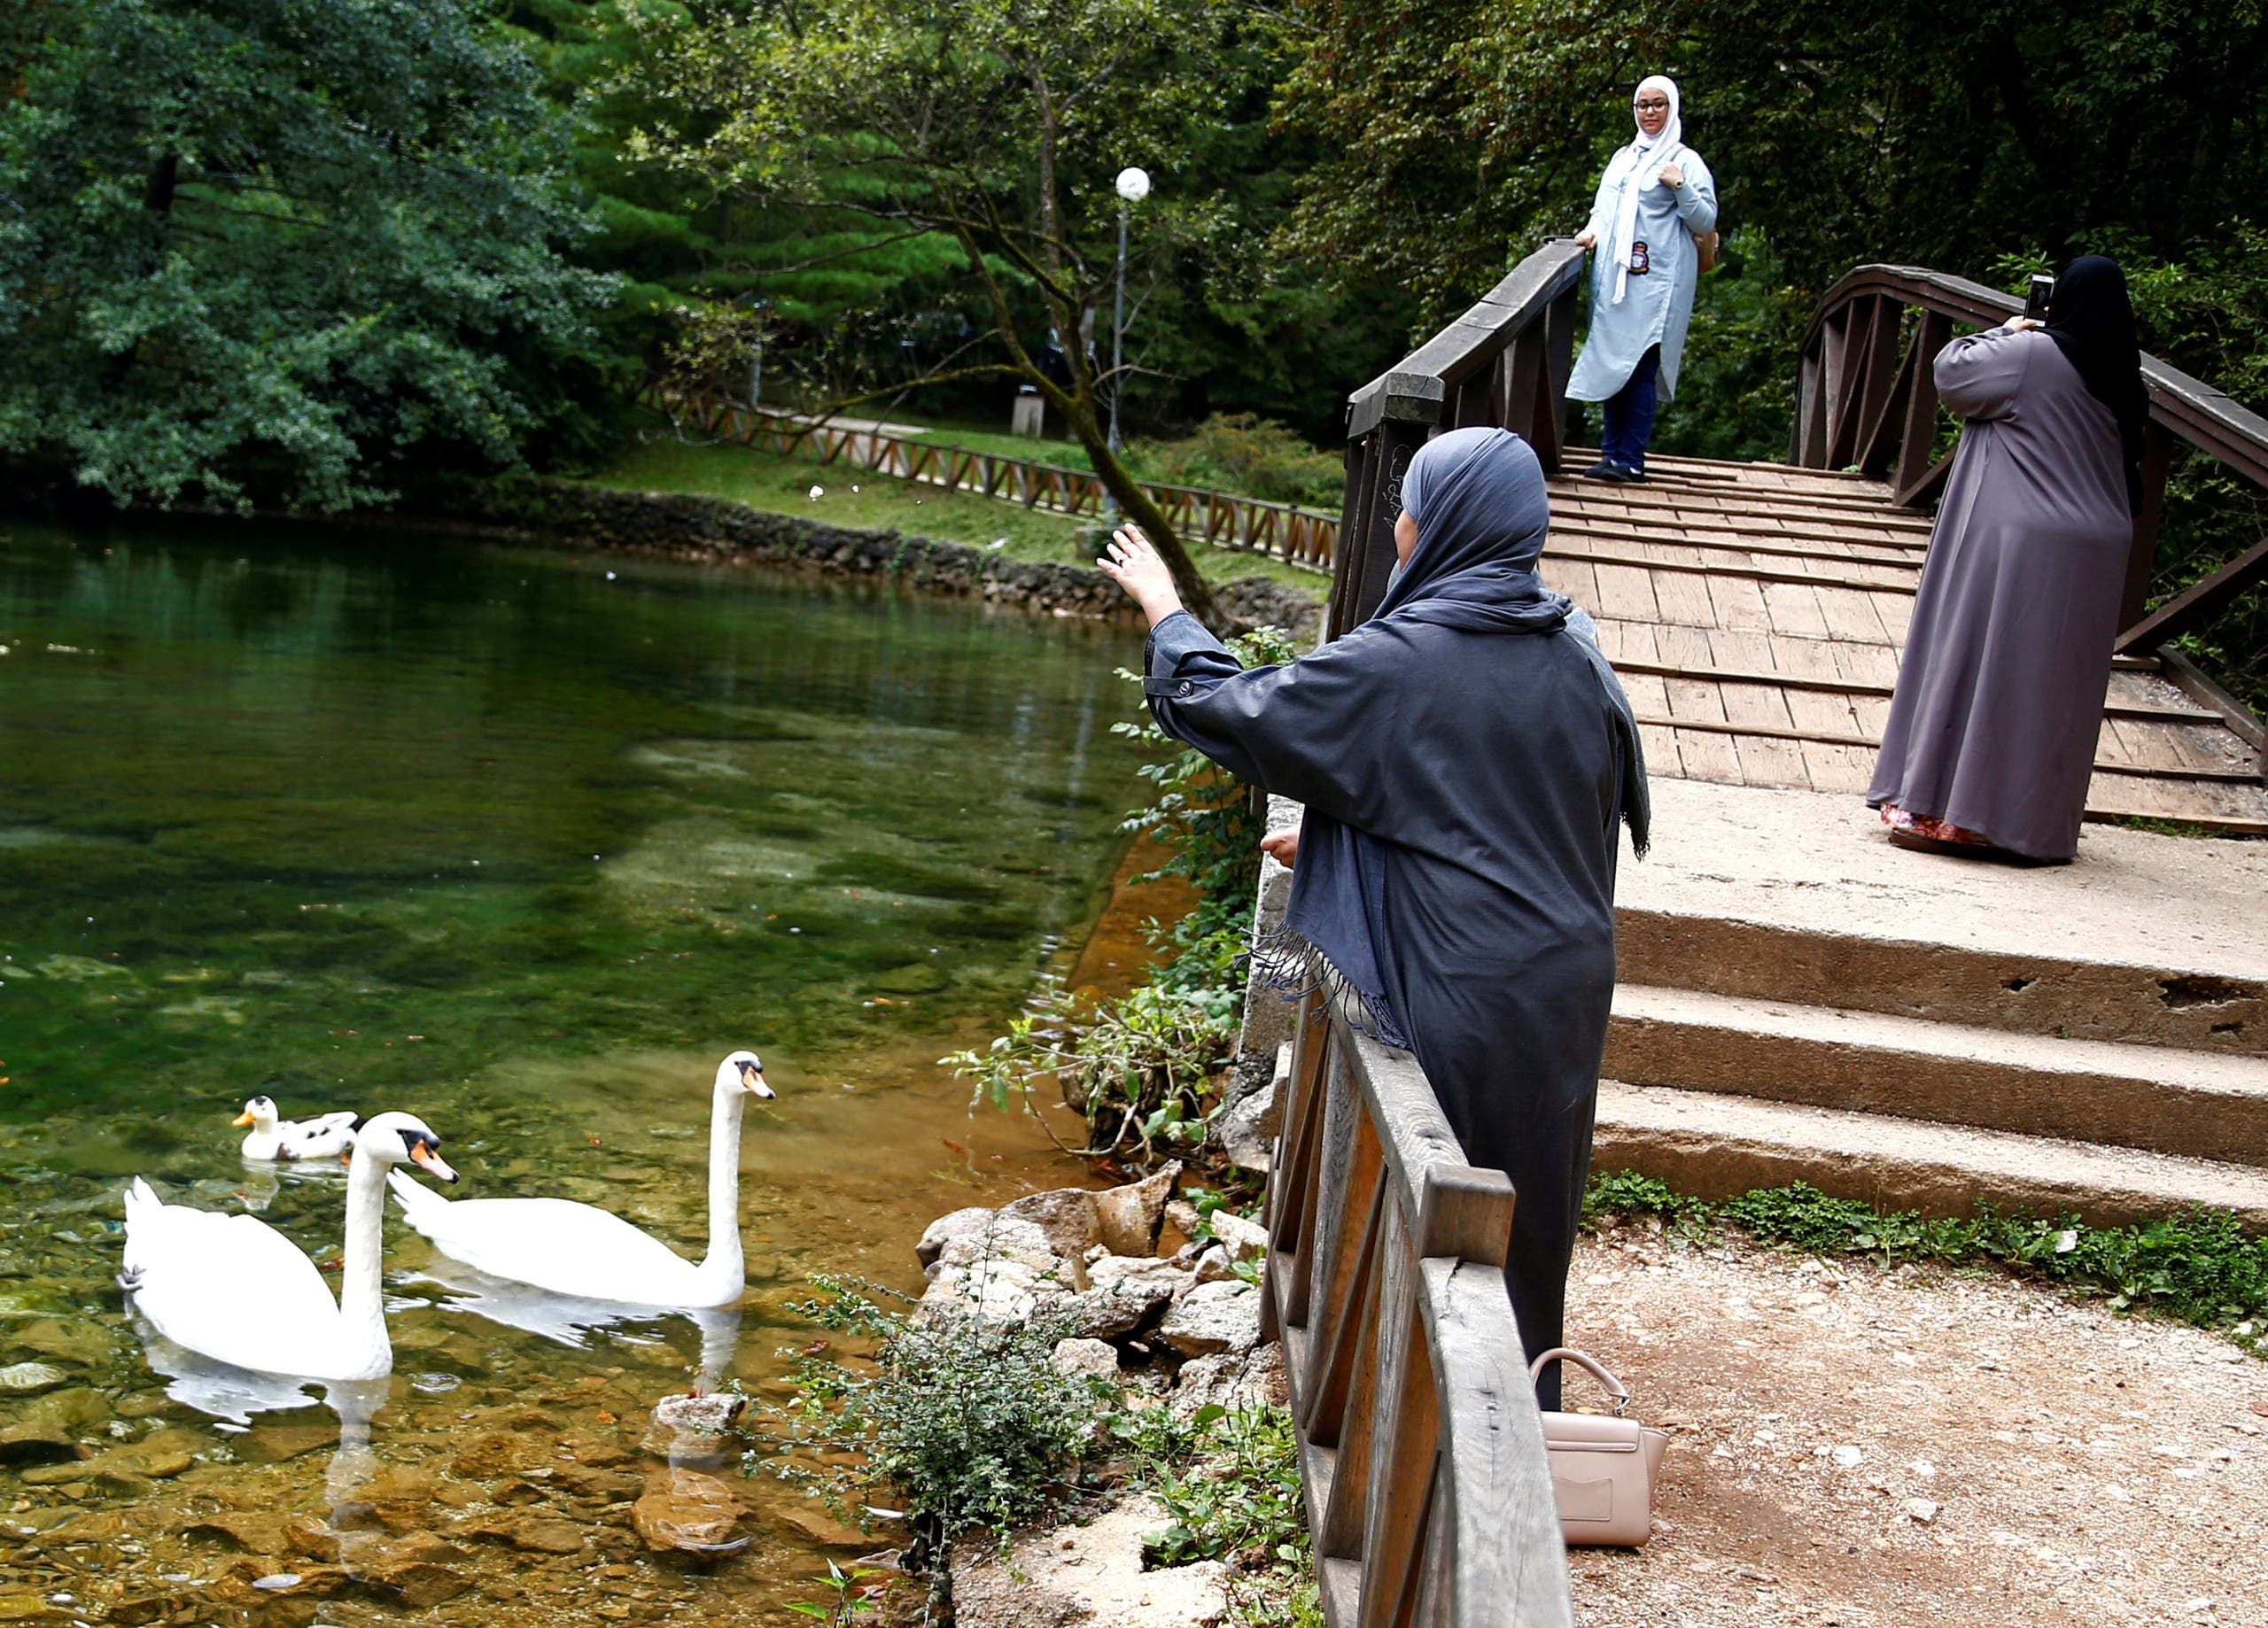 Tourists from the Middle East enjoy at Vrelo Bosne nature park in Ilidza near Sarajevo, Bosnia and Herzegovina, August 19, 2016. reuters